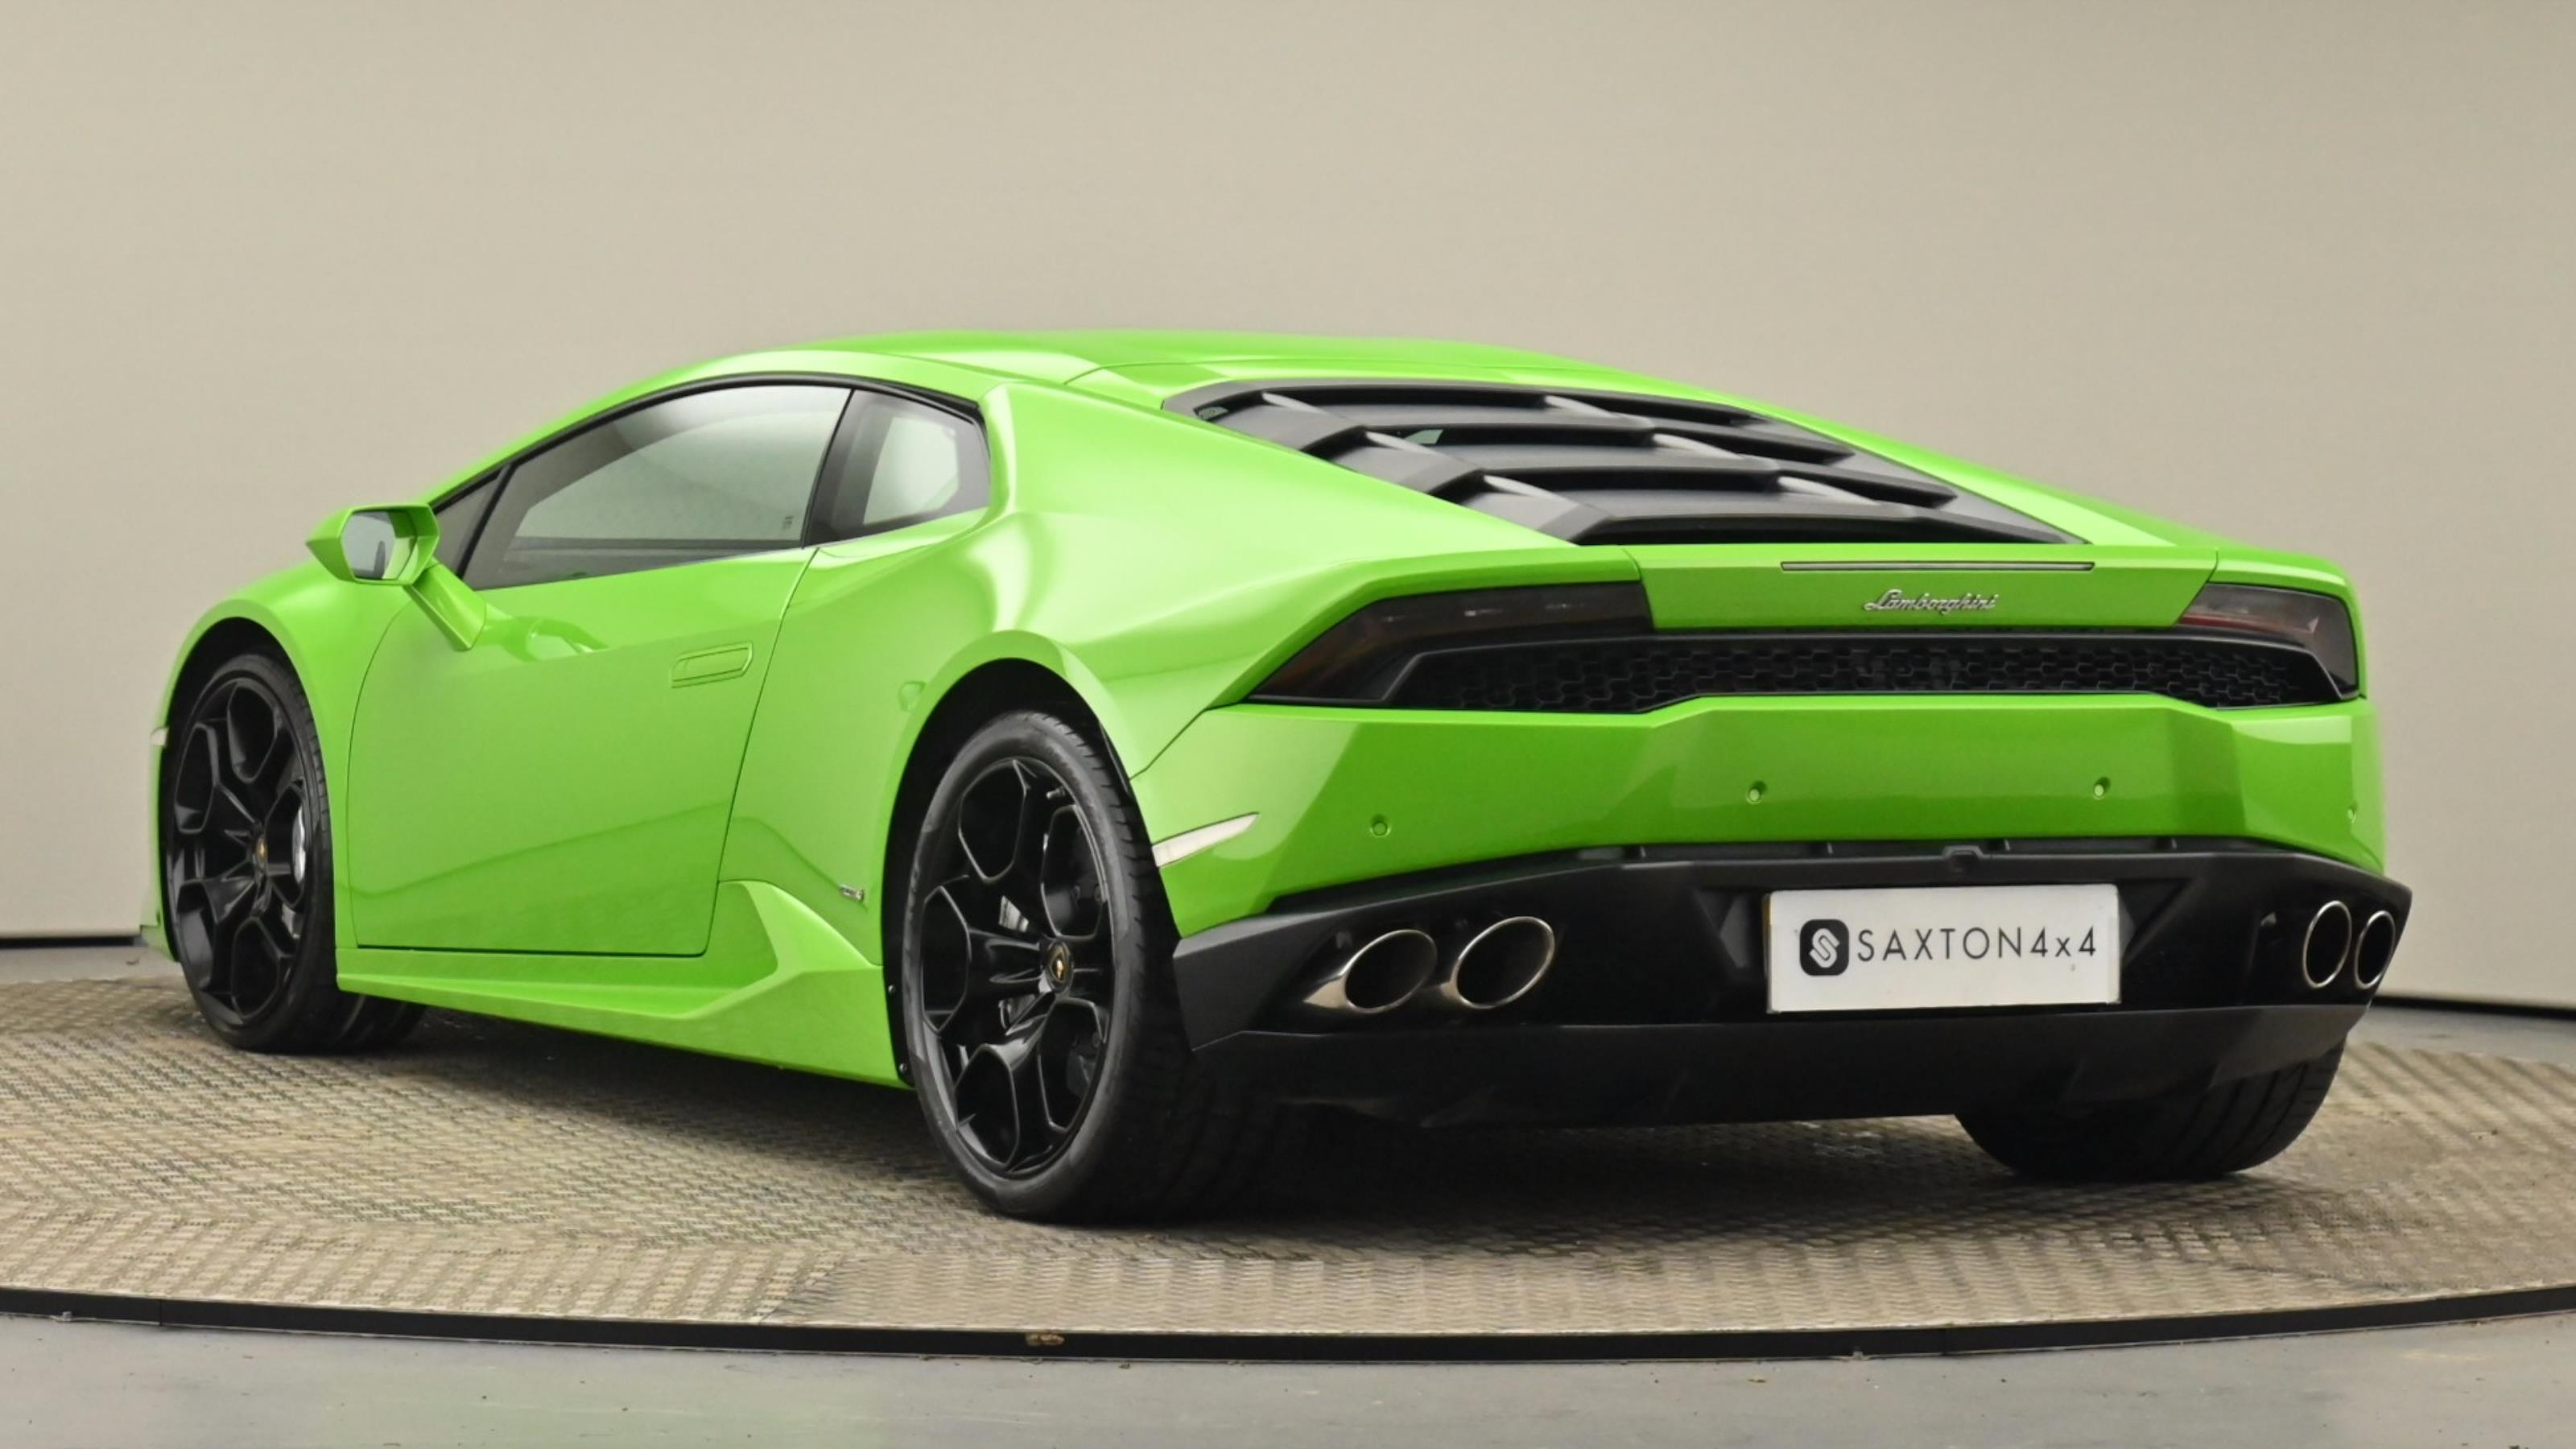 Used 2014 Lamborghini HURACAN LP 610-4 2dr LDF GREEN at Saxton4x4